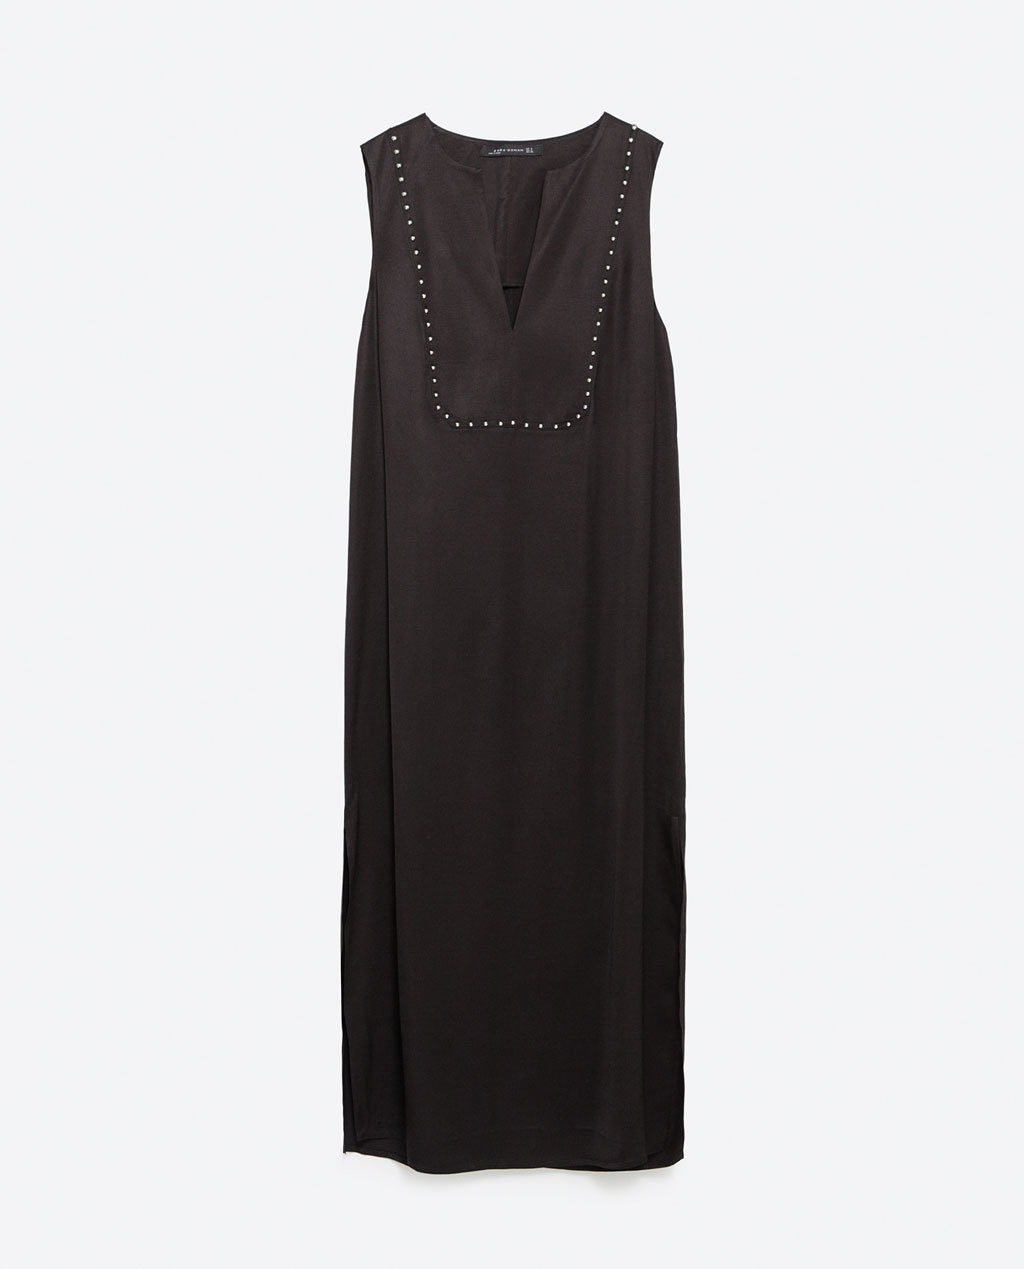 Long Tunic - style: shift; length: below the knee; neckline: v-neck; pattern: plain; sleeve style: sleeveless; predominant colour: black; occasions: evening; fit: body skimming; sleeve length: sleeveless; pattern type: fabric; texture group: other - light to midweight; embellishment: studs; season: a/w 2015; wardrobe: event